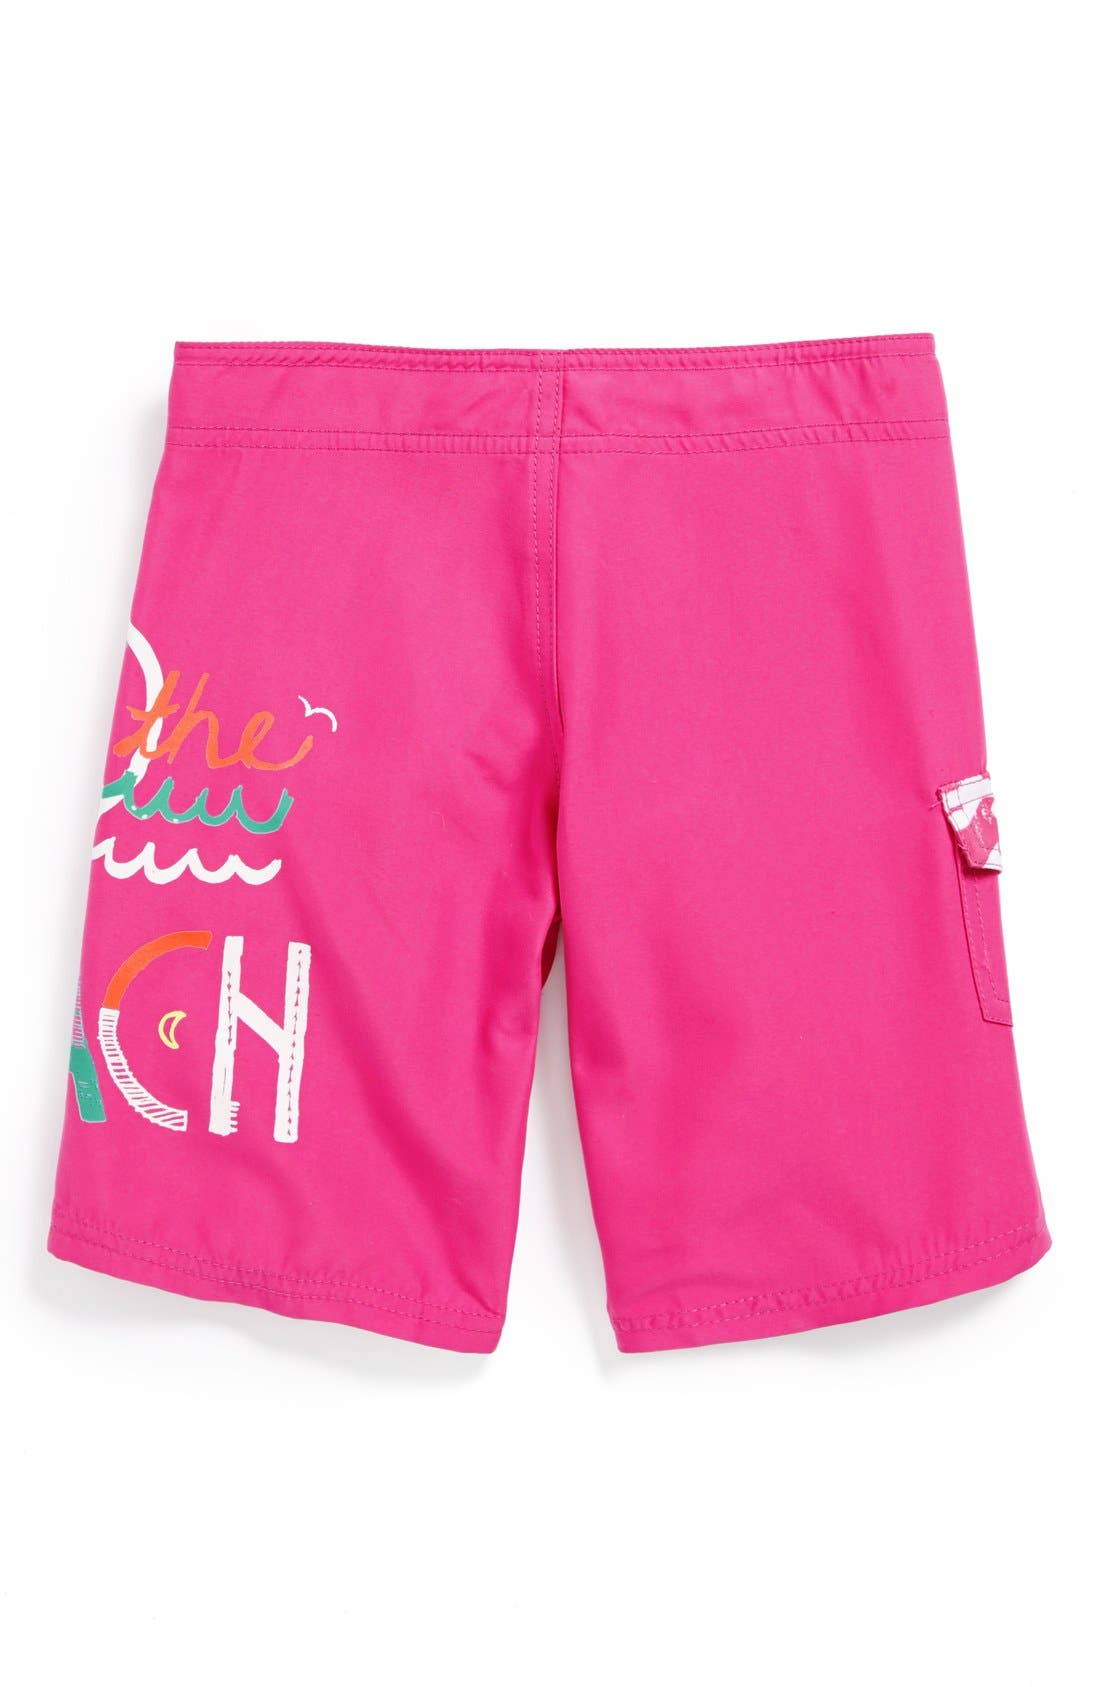 Alternate Image 2  - Billabong 'I Love the Beach' Board Shorts (Big Girls)